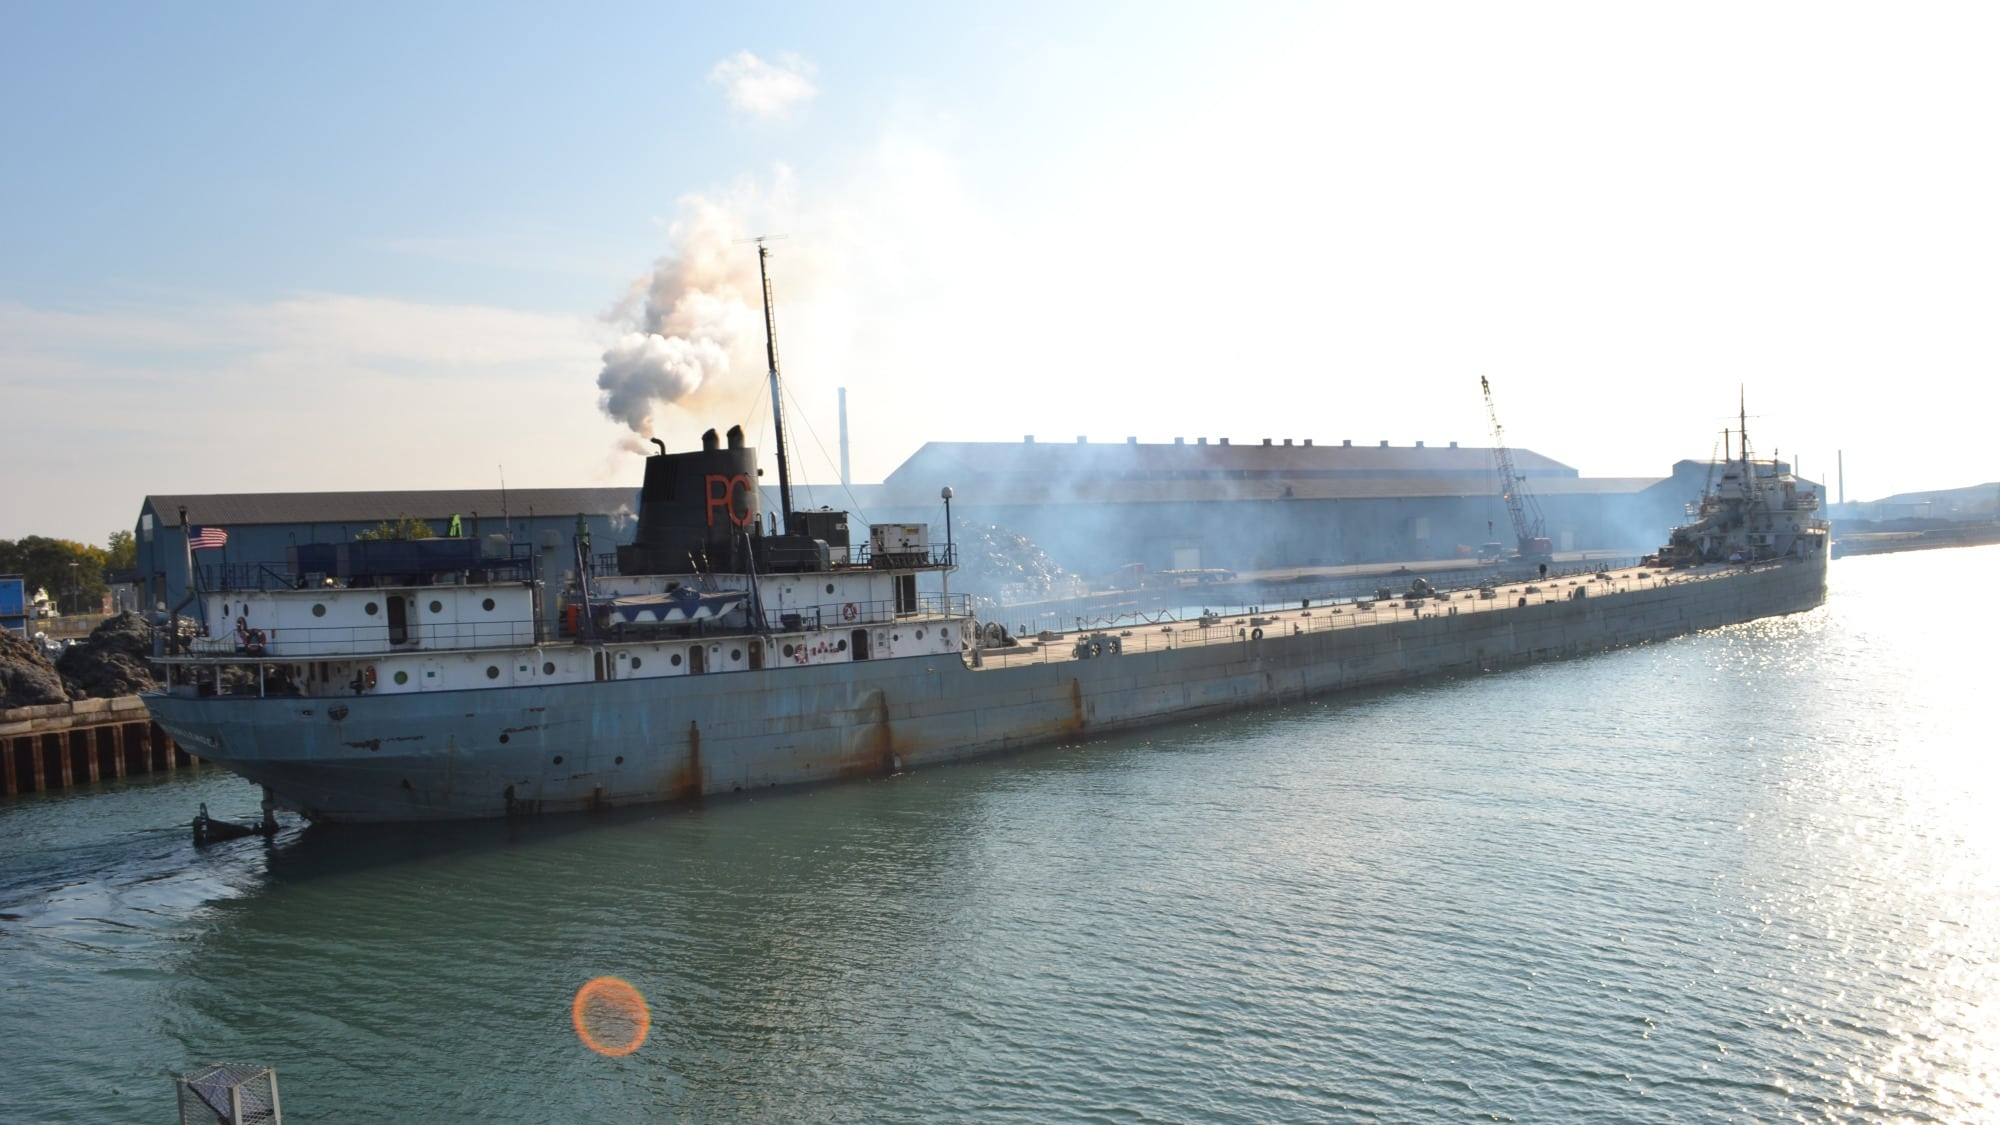 St Mary S Challenger 107 Yr Old Great Lakes Freighter